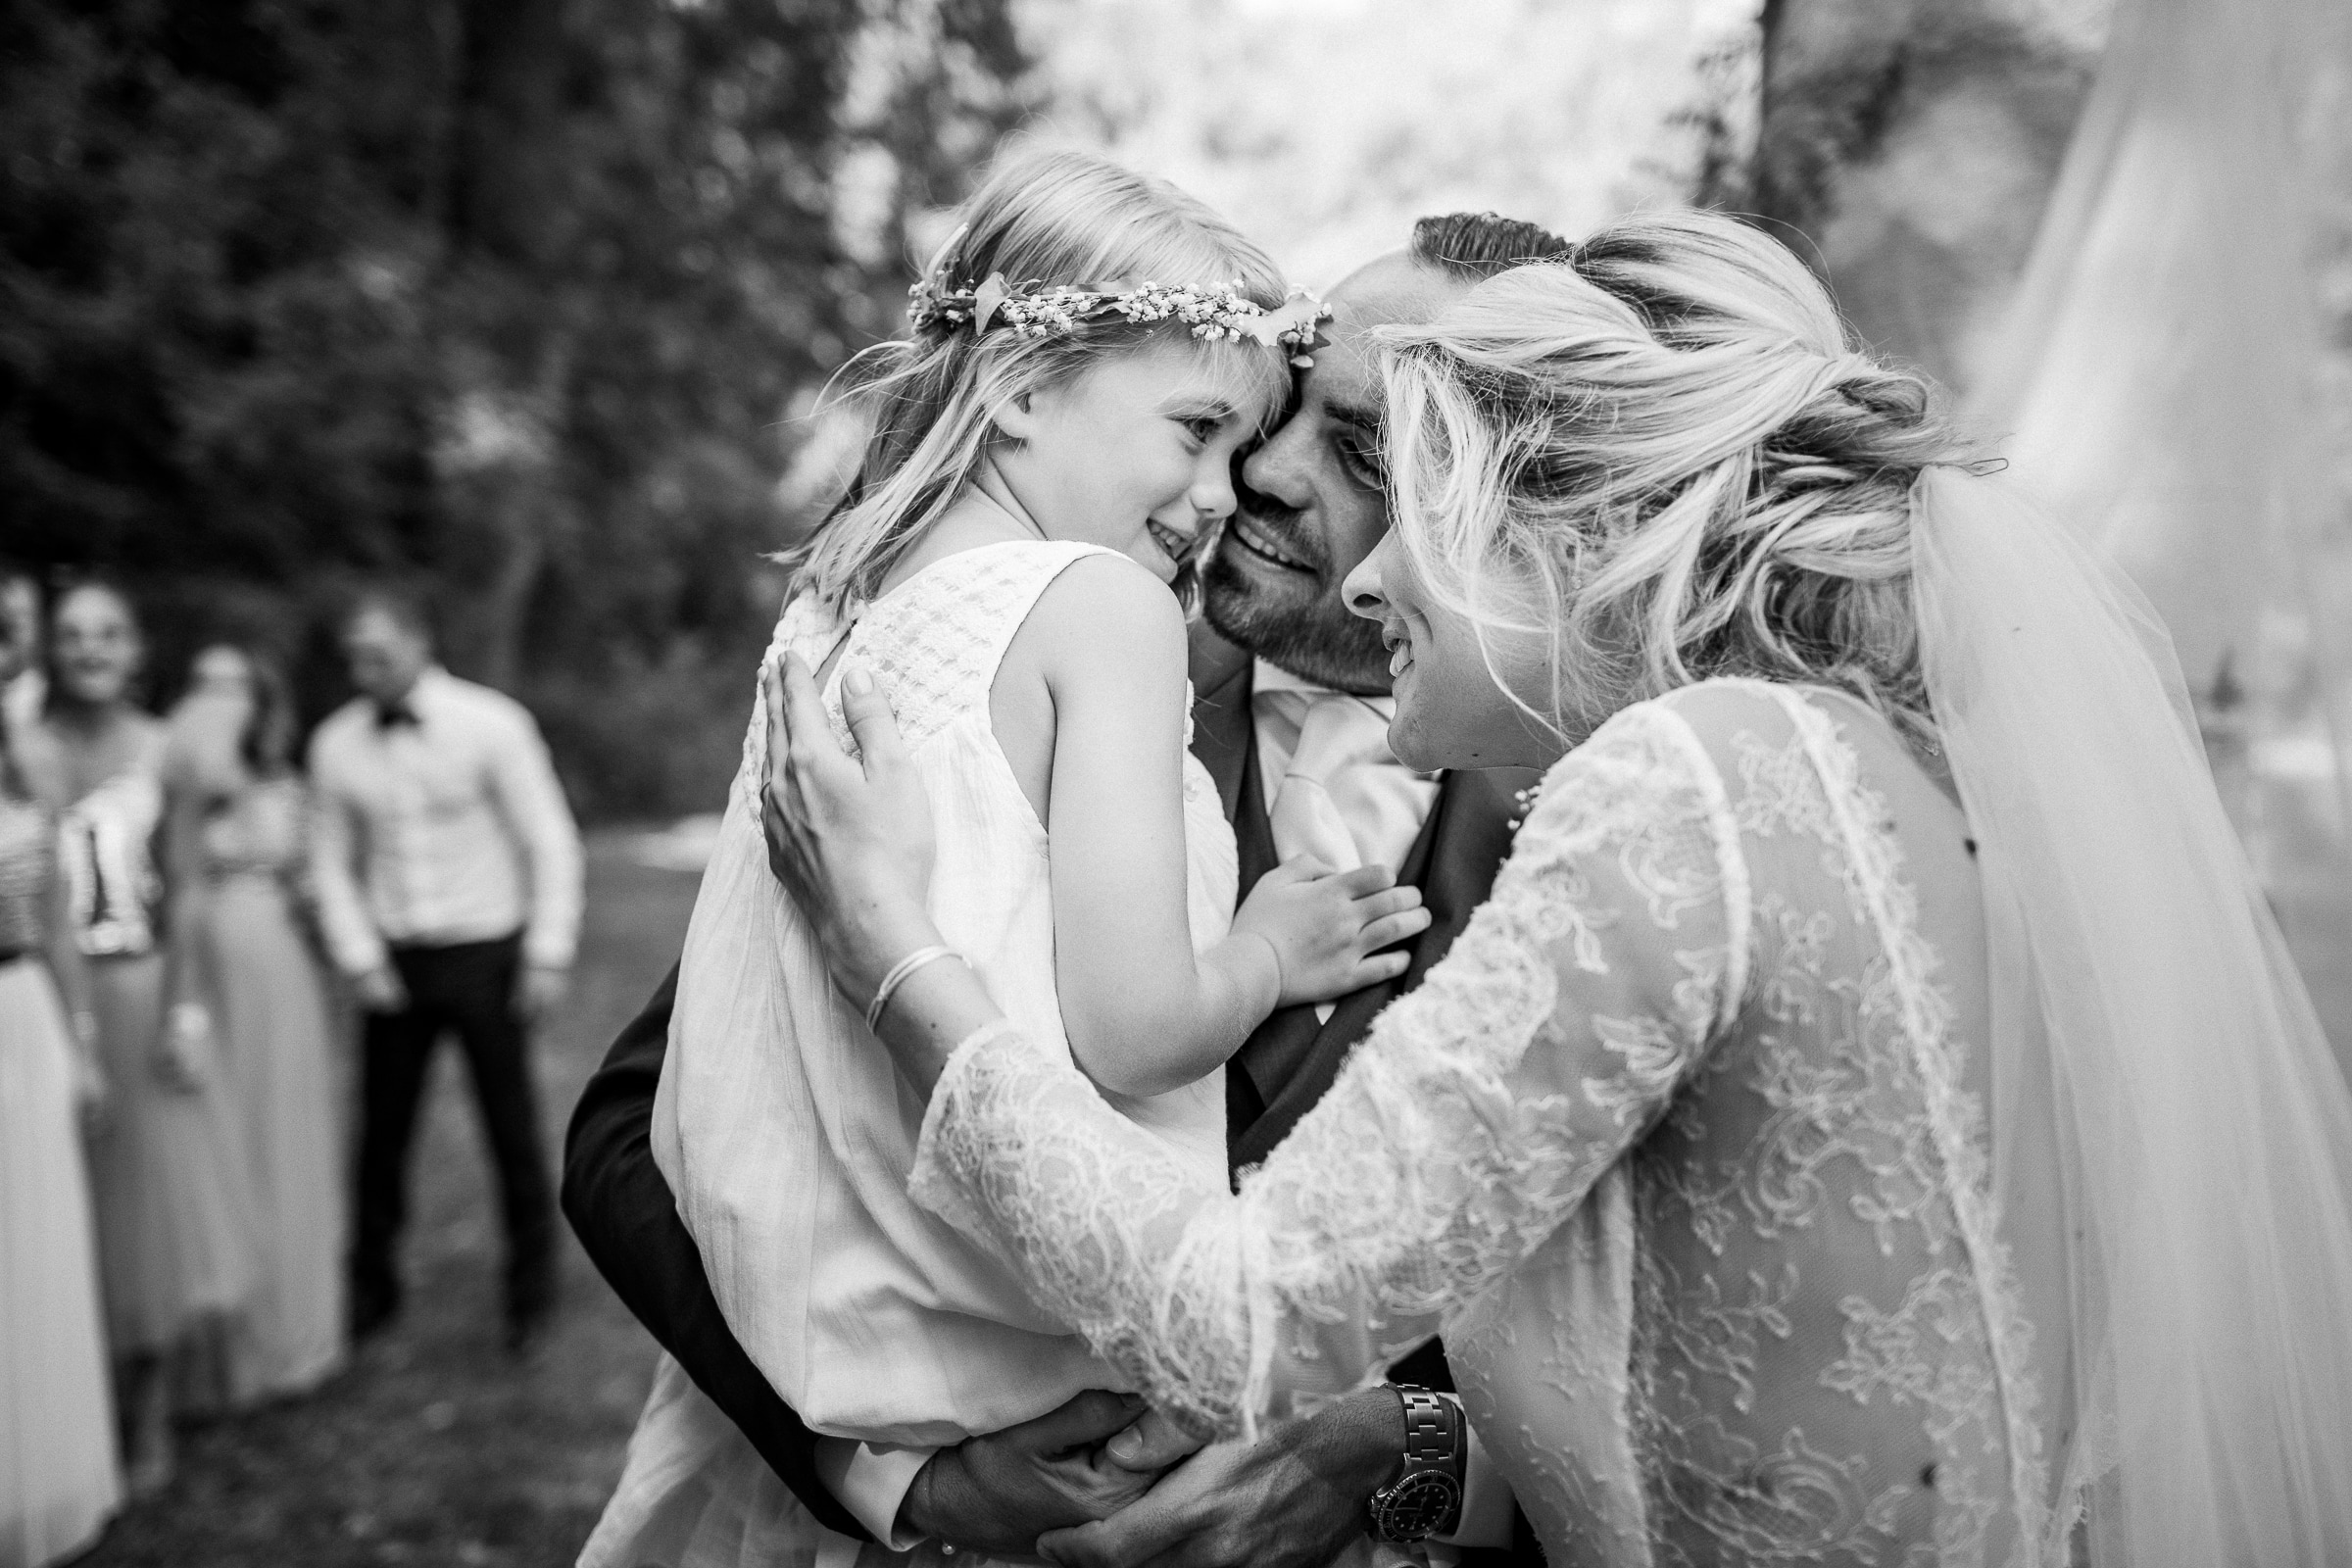 Bride and groom hold flower girl - photo by Sylvain Bouzat Wedding Photographer